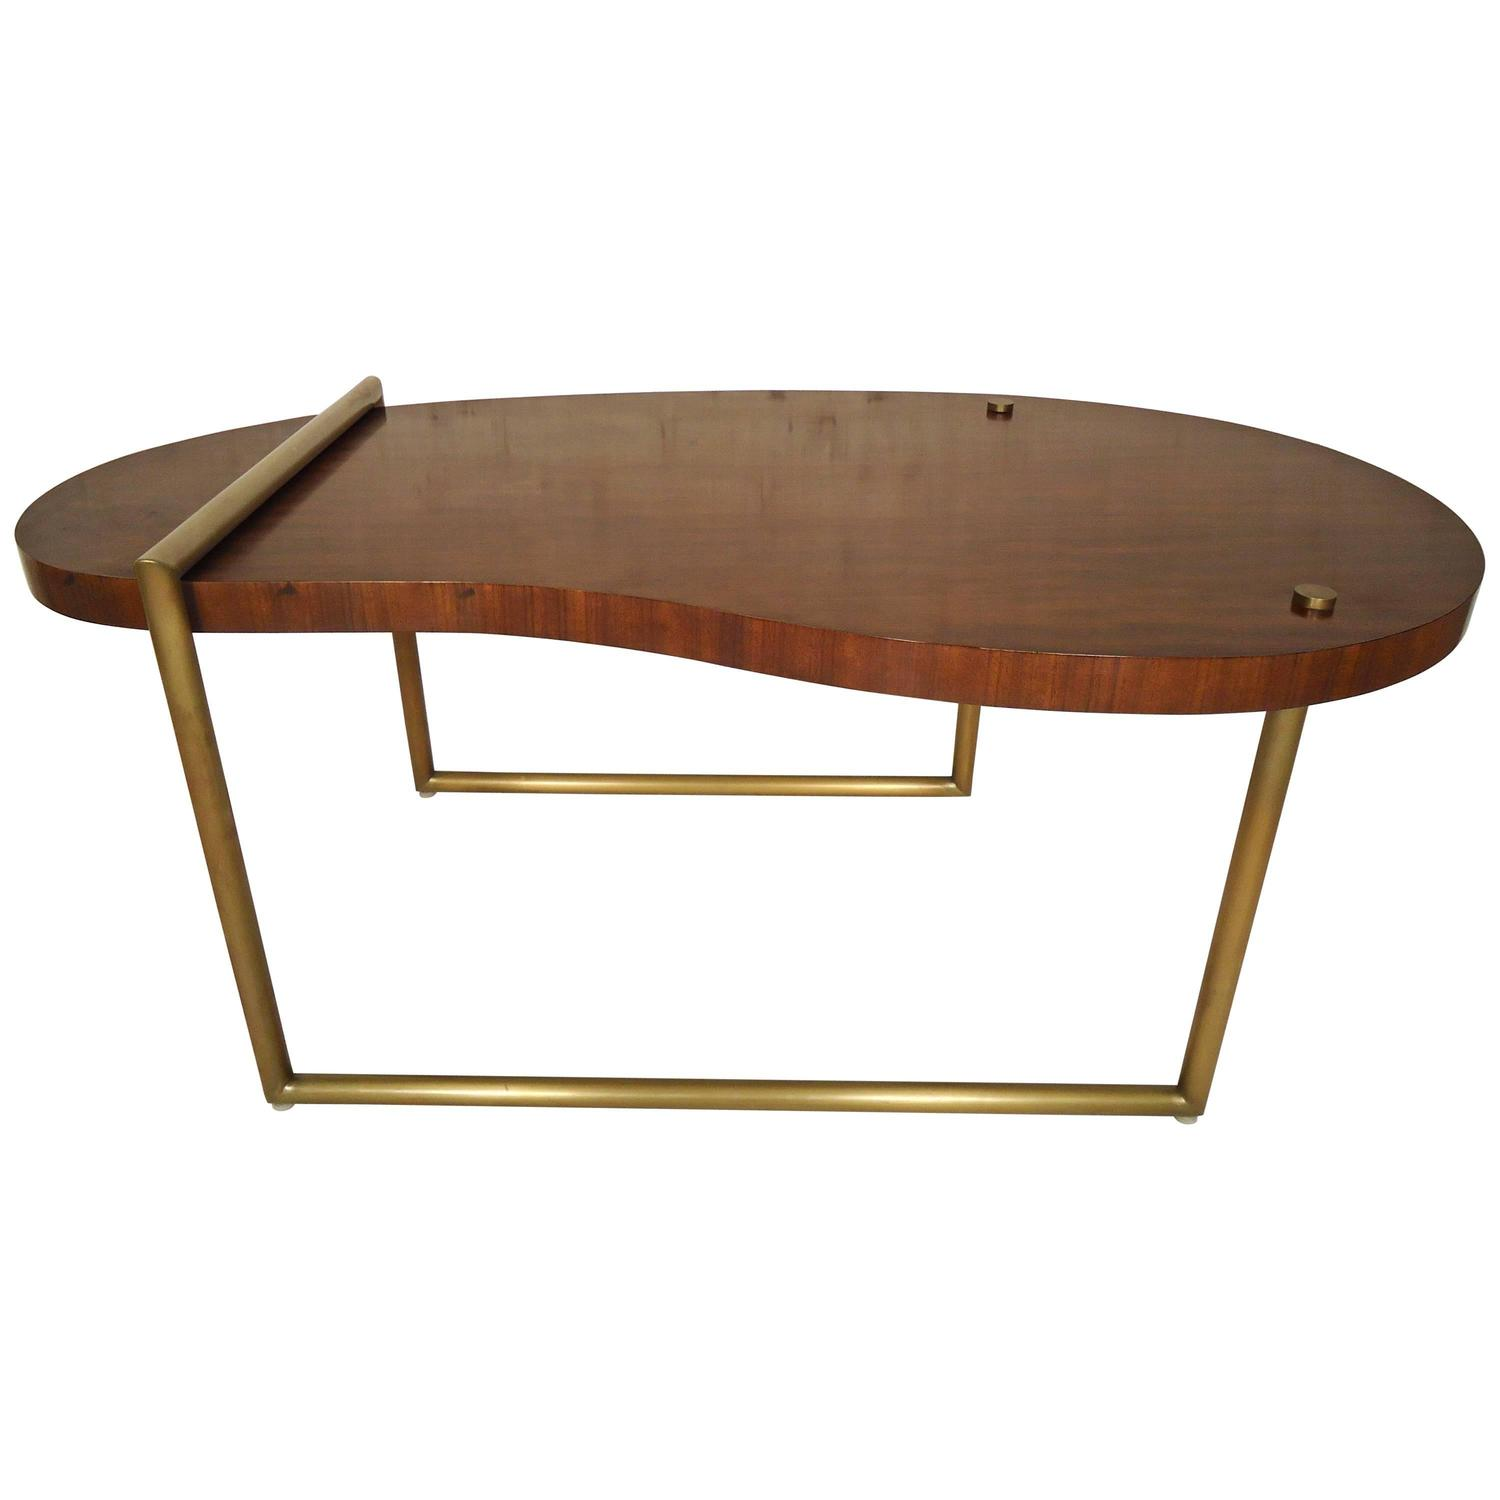 Kidney Coffee Table By Jonathan Charles At 1stdibs